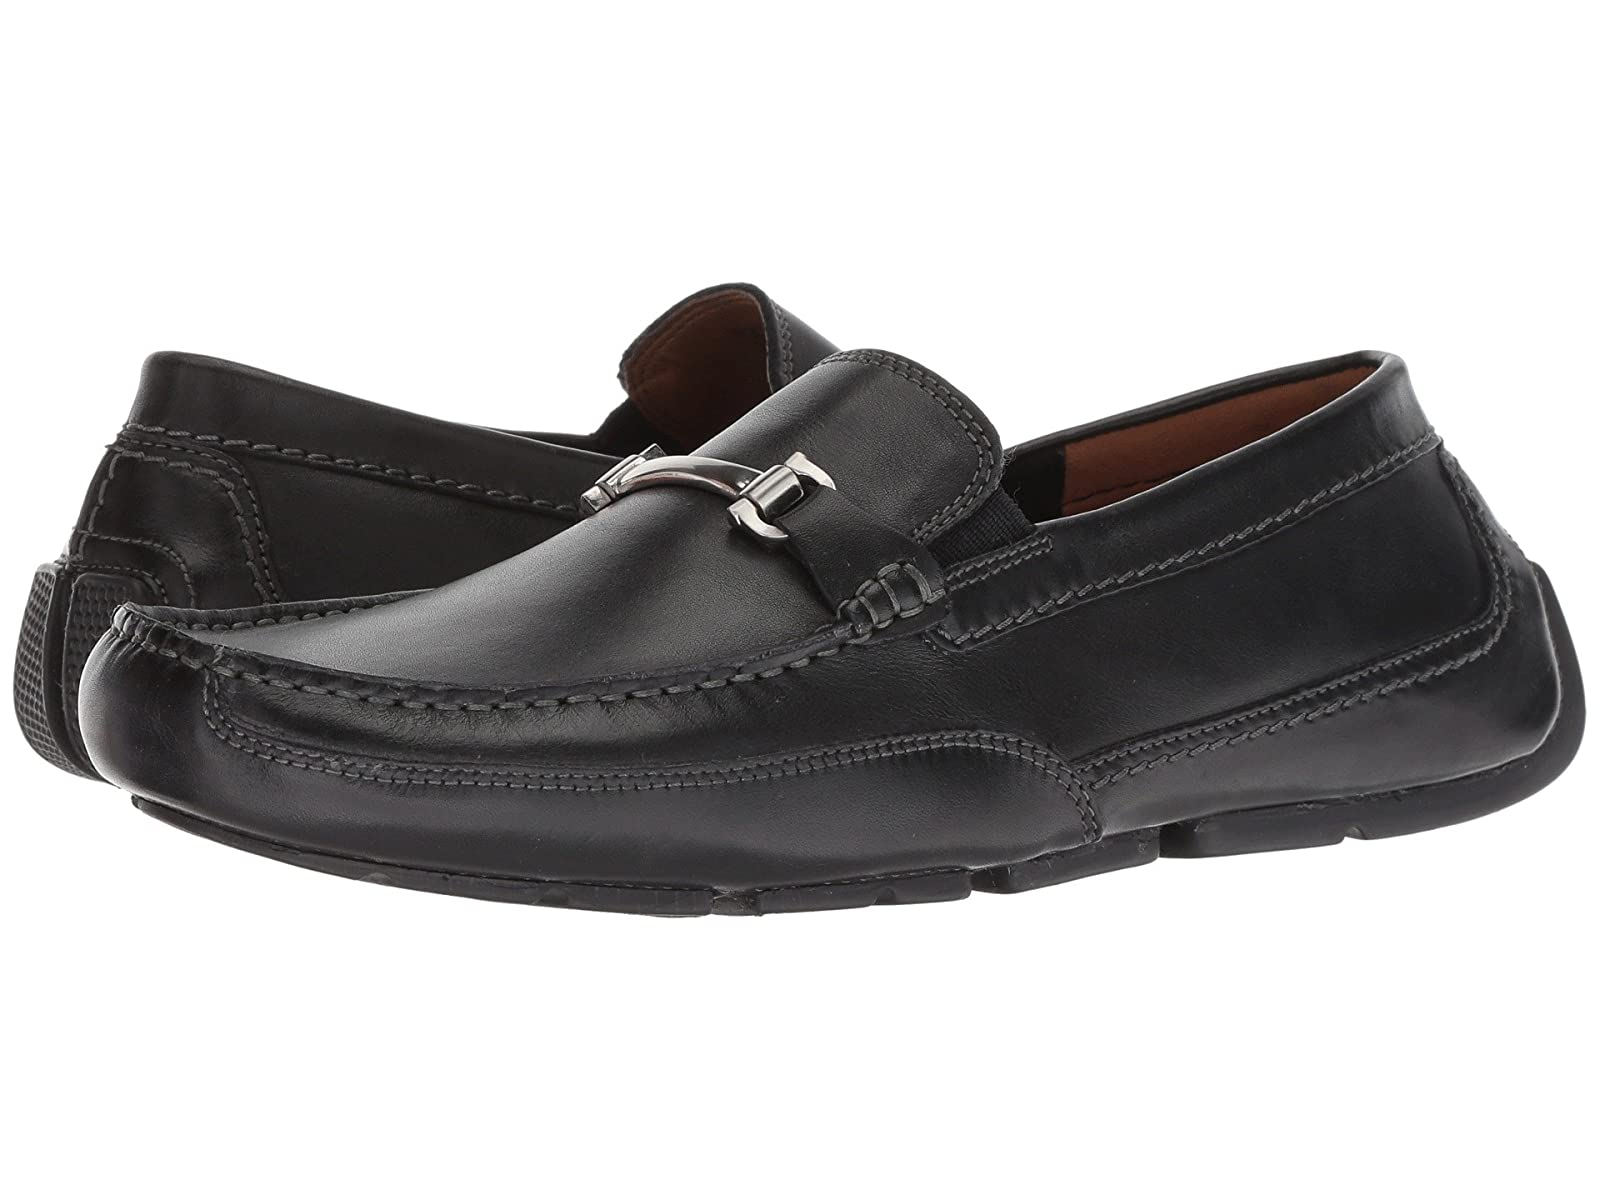 Clarks Ashmont BraceCheap and distinctive eye-catching shoes